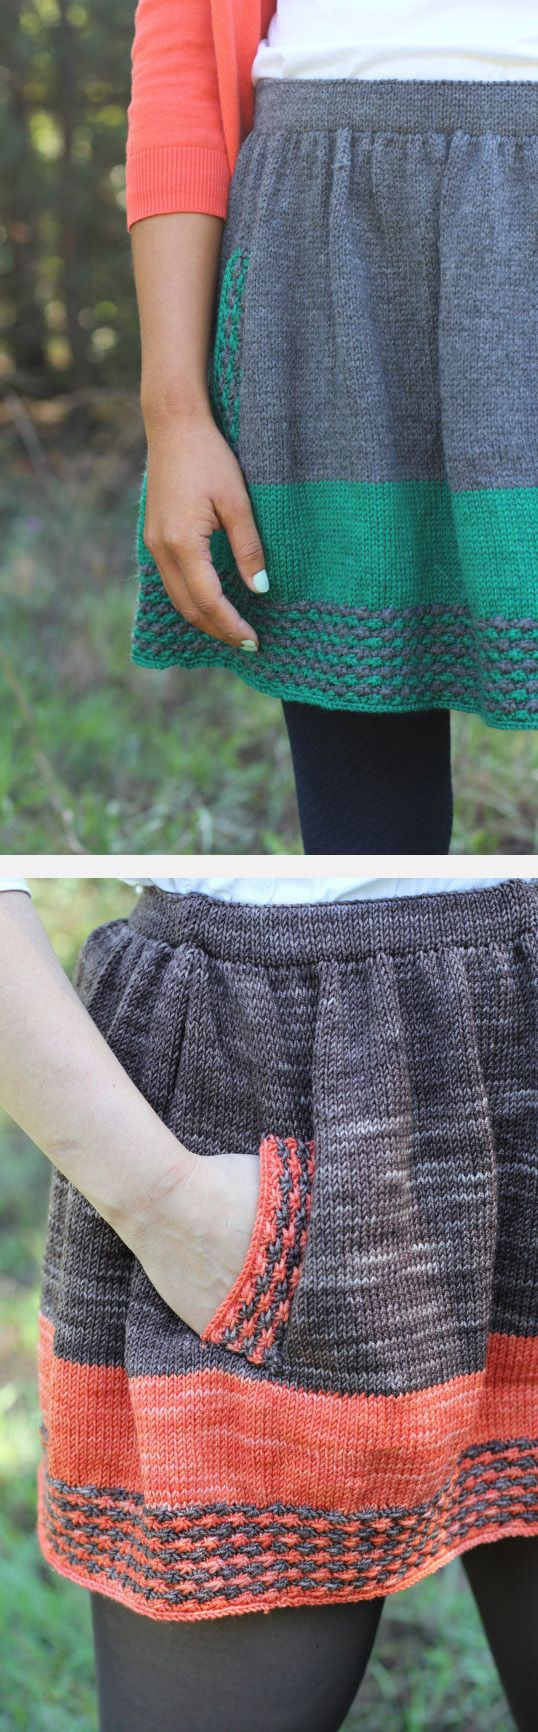 1011 best tricot tutos images on pinterest tricot crochet knitting pattern for new girl skirt inspired by the style of zooey deschanels character jess on bankloansurffo Gallery